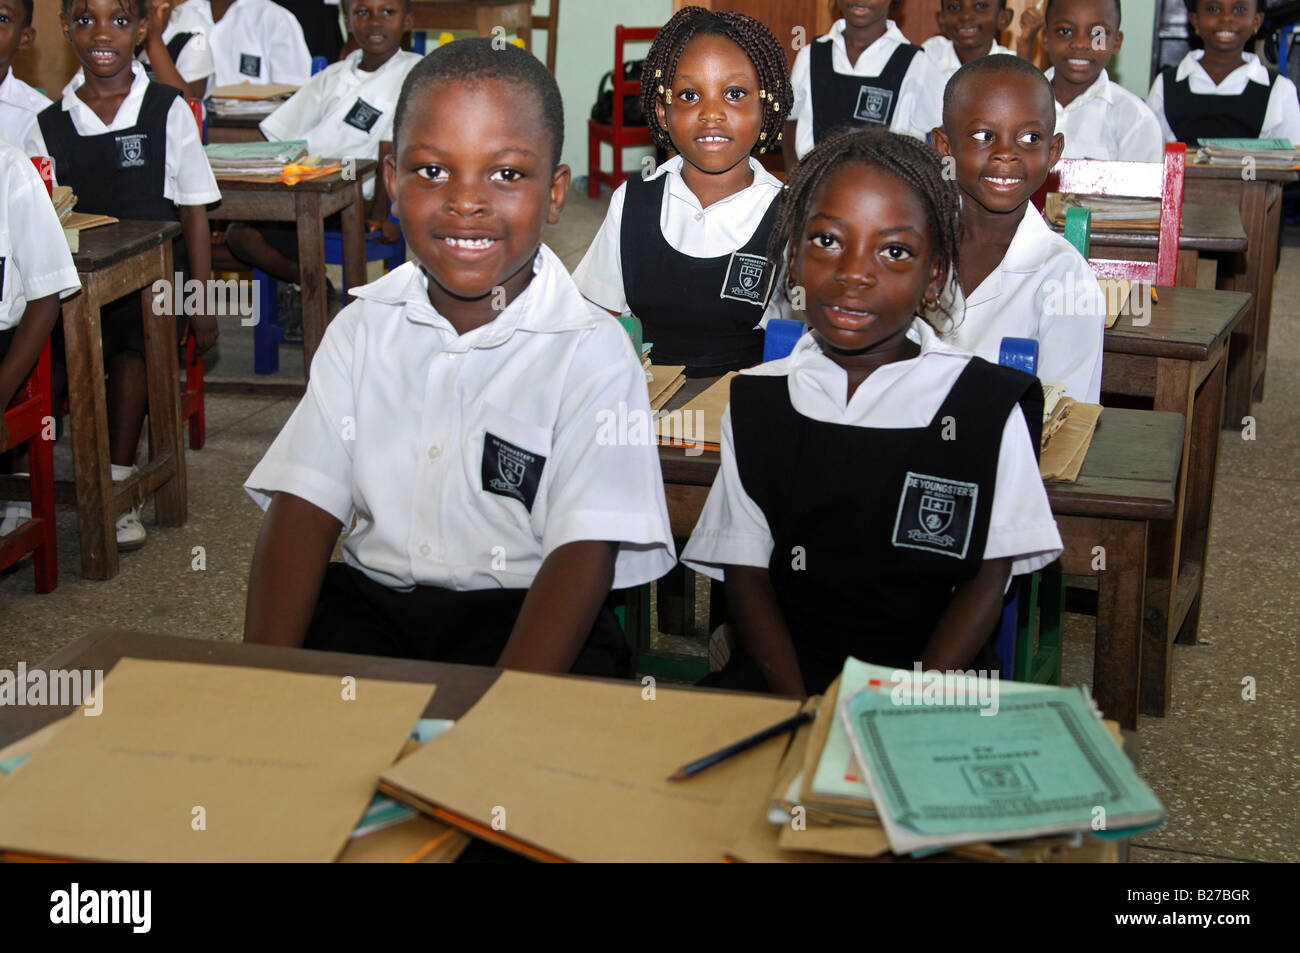 Students of a primary class of the De Youngsters International School, Accra, Ghana - Stock Image